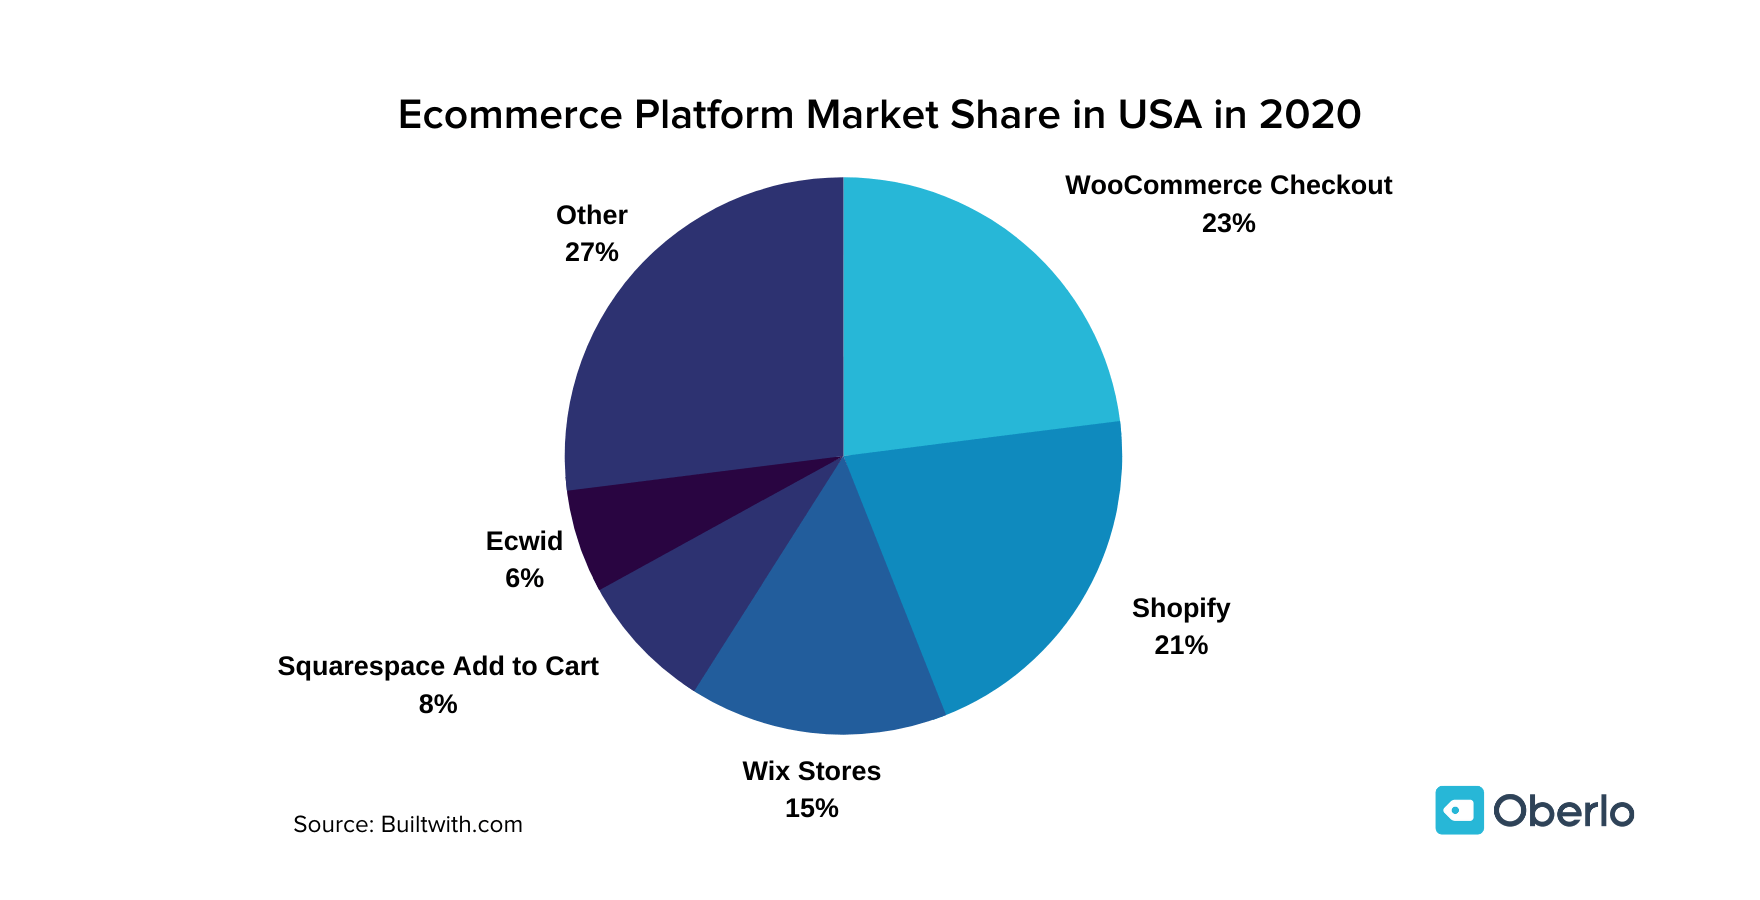 Chart showing e-commerce platform market share.